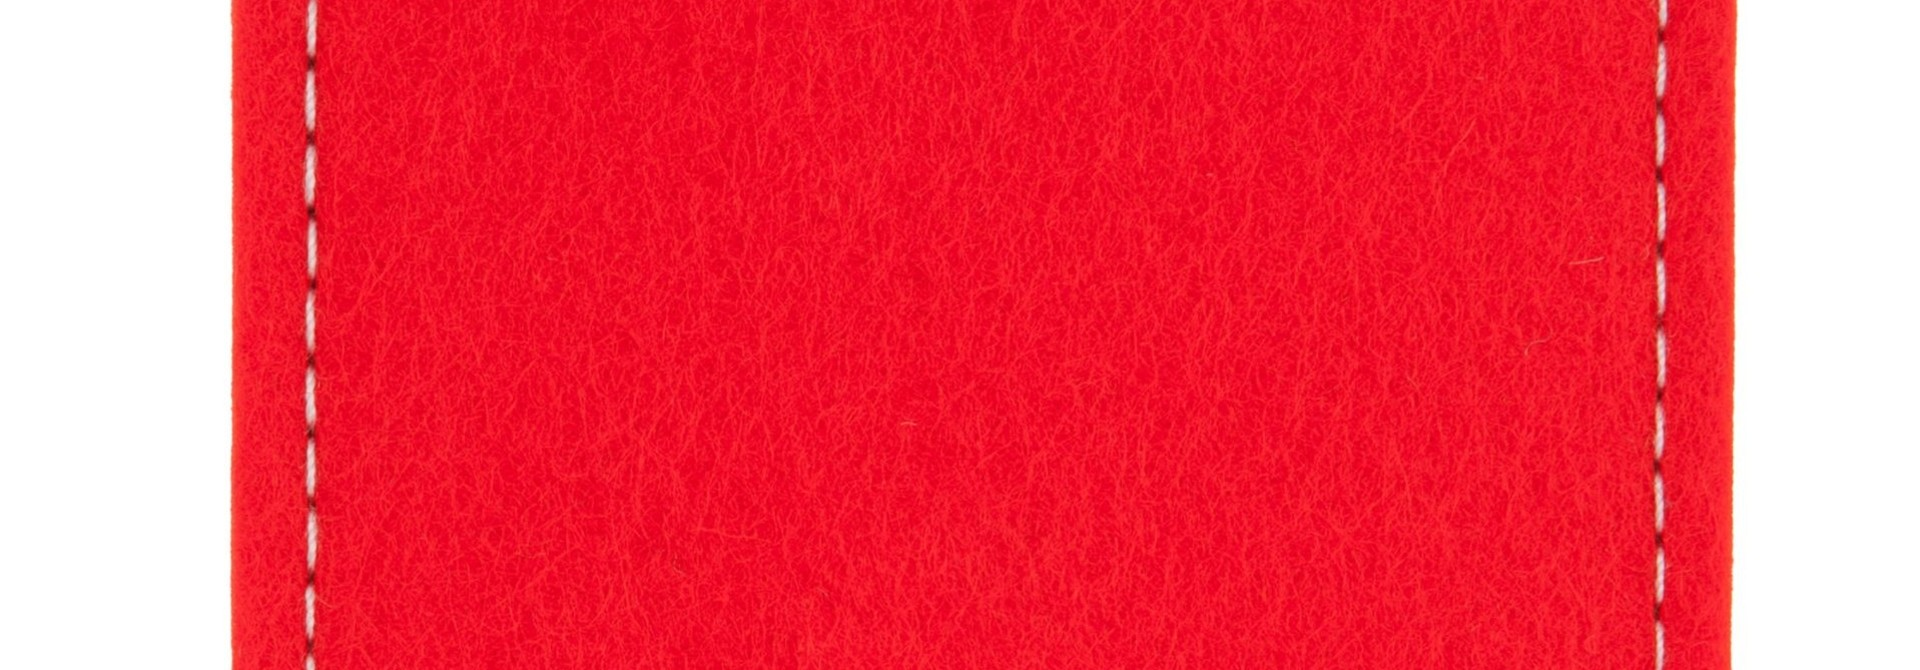 Xperia Sleeve Bright-Red